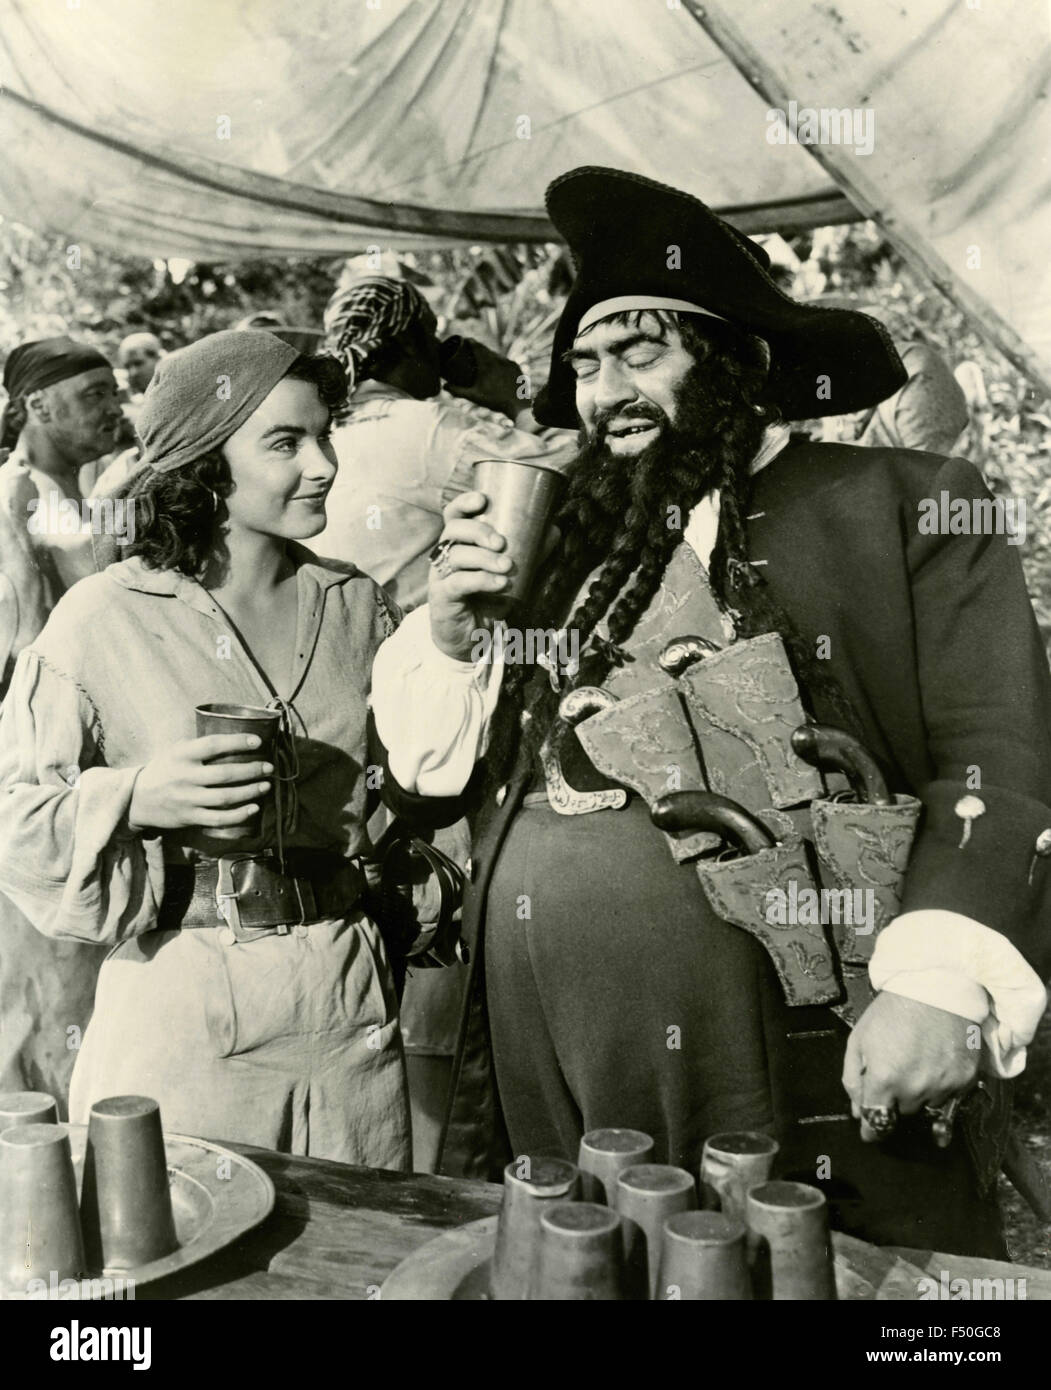 The actors Thomas Gomez and Jean Peters in a scene from the film 'Anne of the Indies', USA 1951 - Stock Image